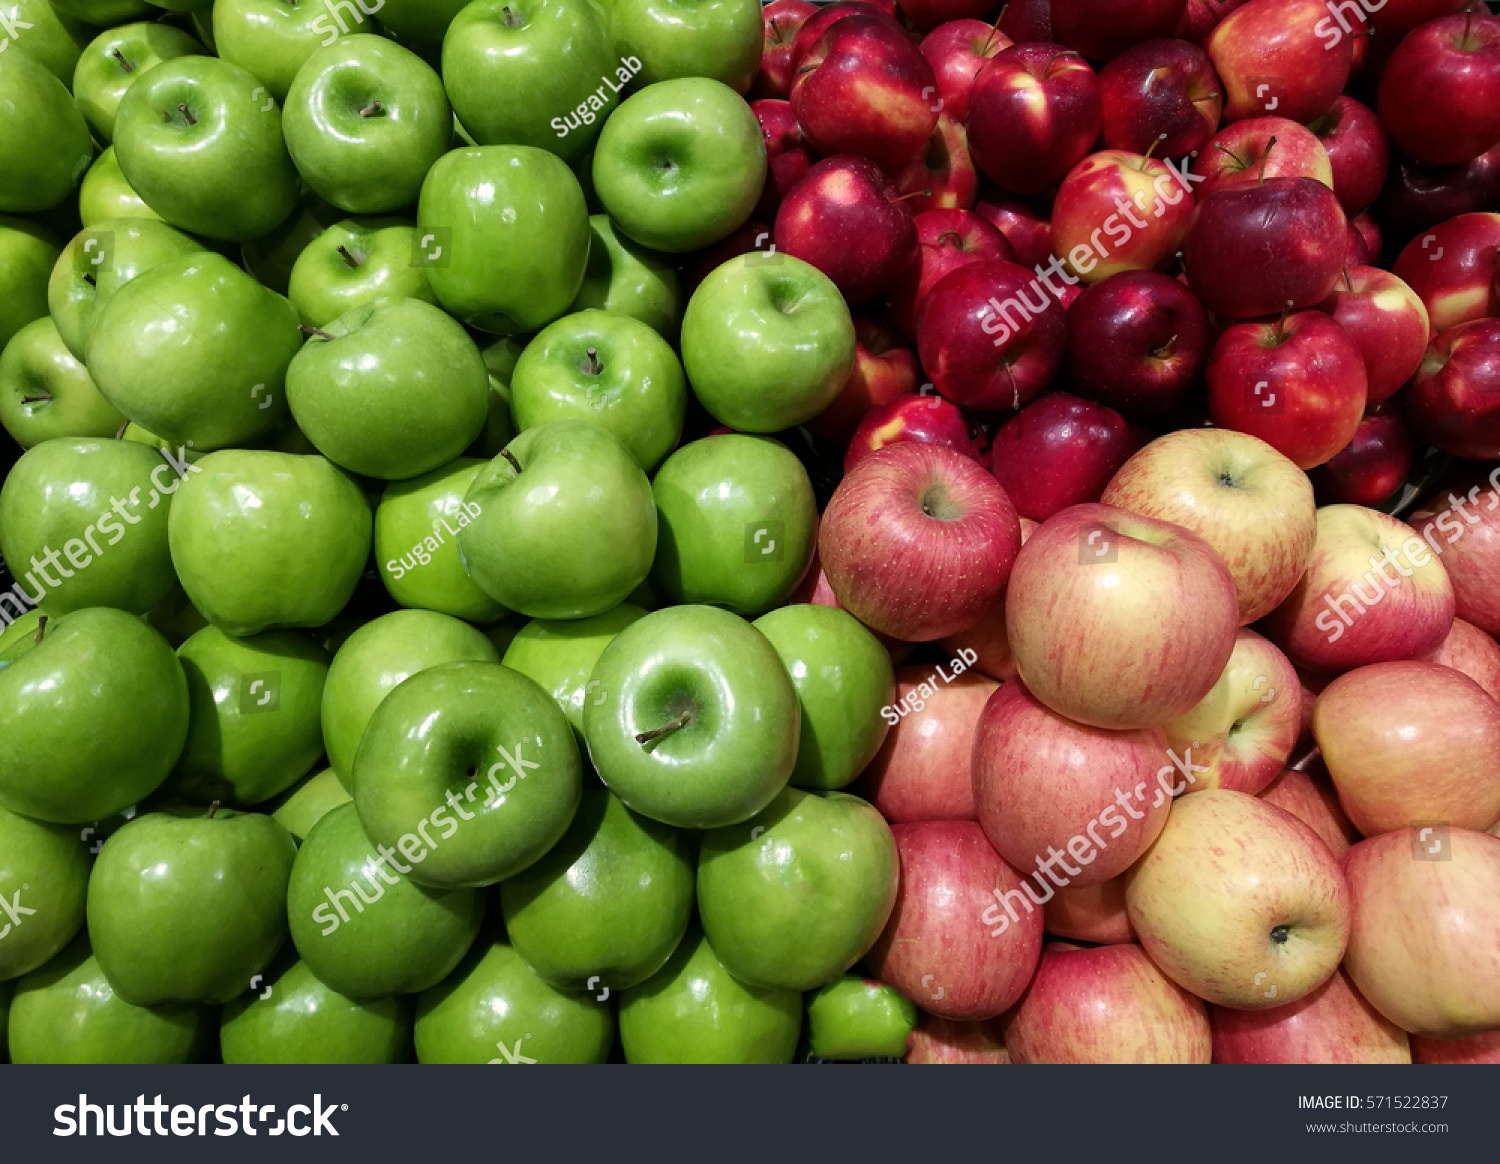 green and red apples. green and red apples r